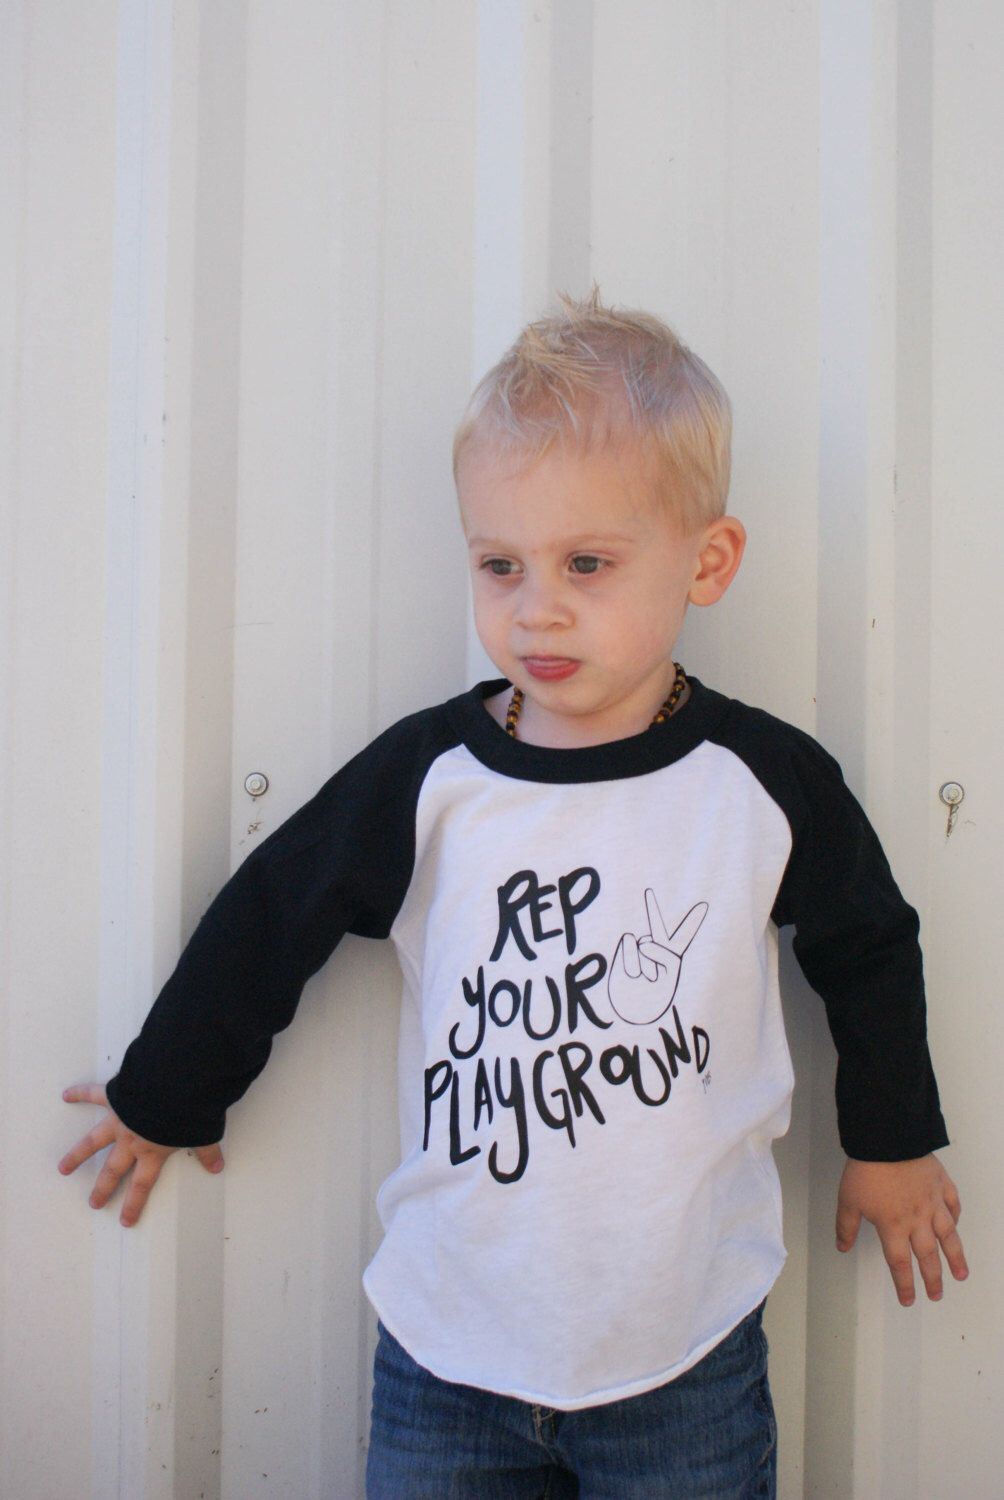 Baby Boy and Girl Rep Your Playground Raglan, Trendy Hipster Infant Shirt by shopmonkeybug on Etsy https://www.etsy.com/listing/203203913/baby-boy-and-girl-rep-your-playground